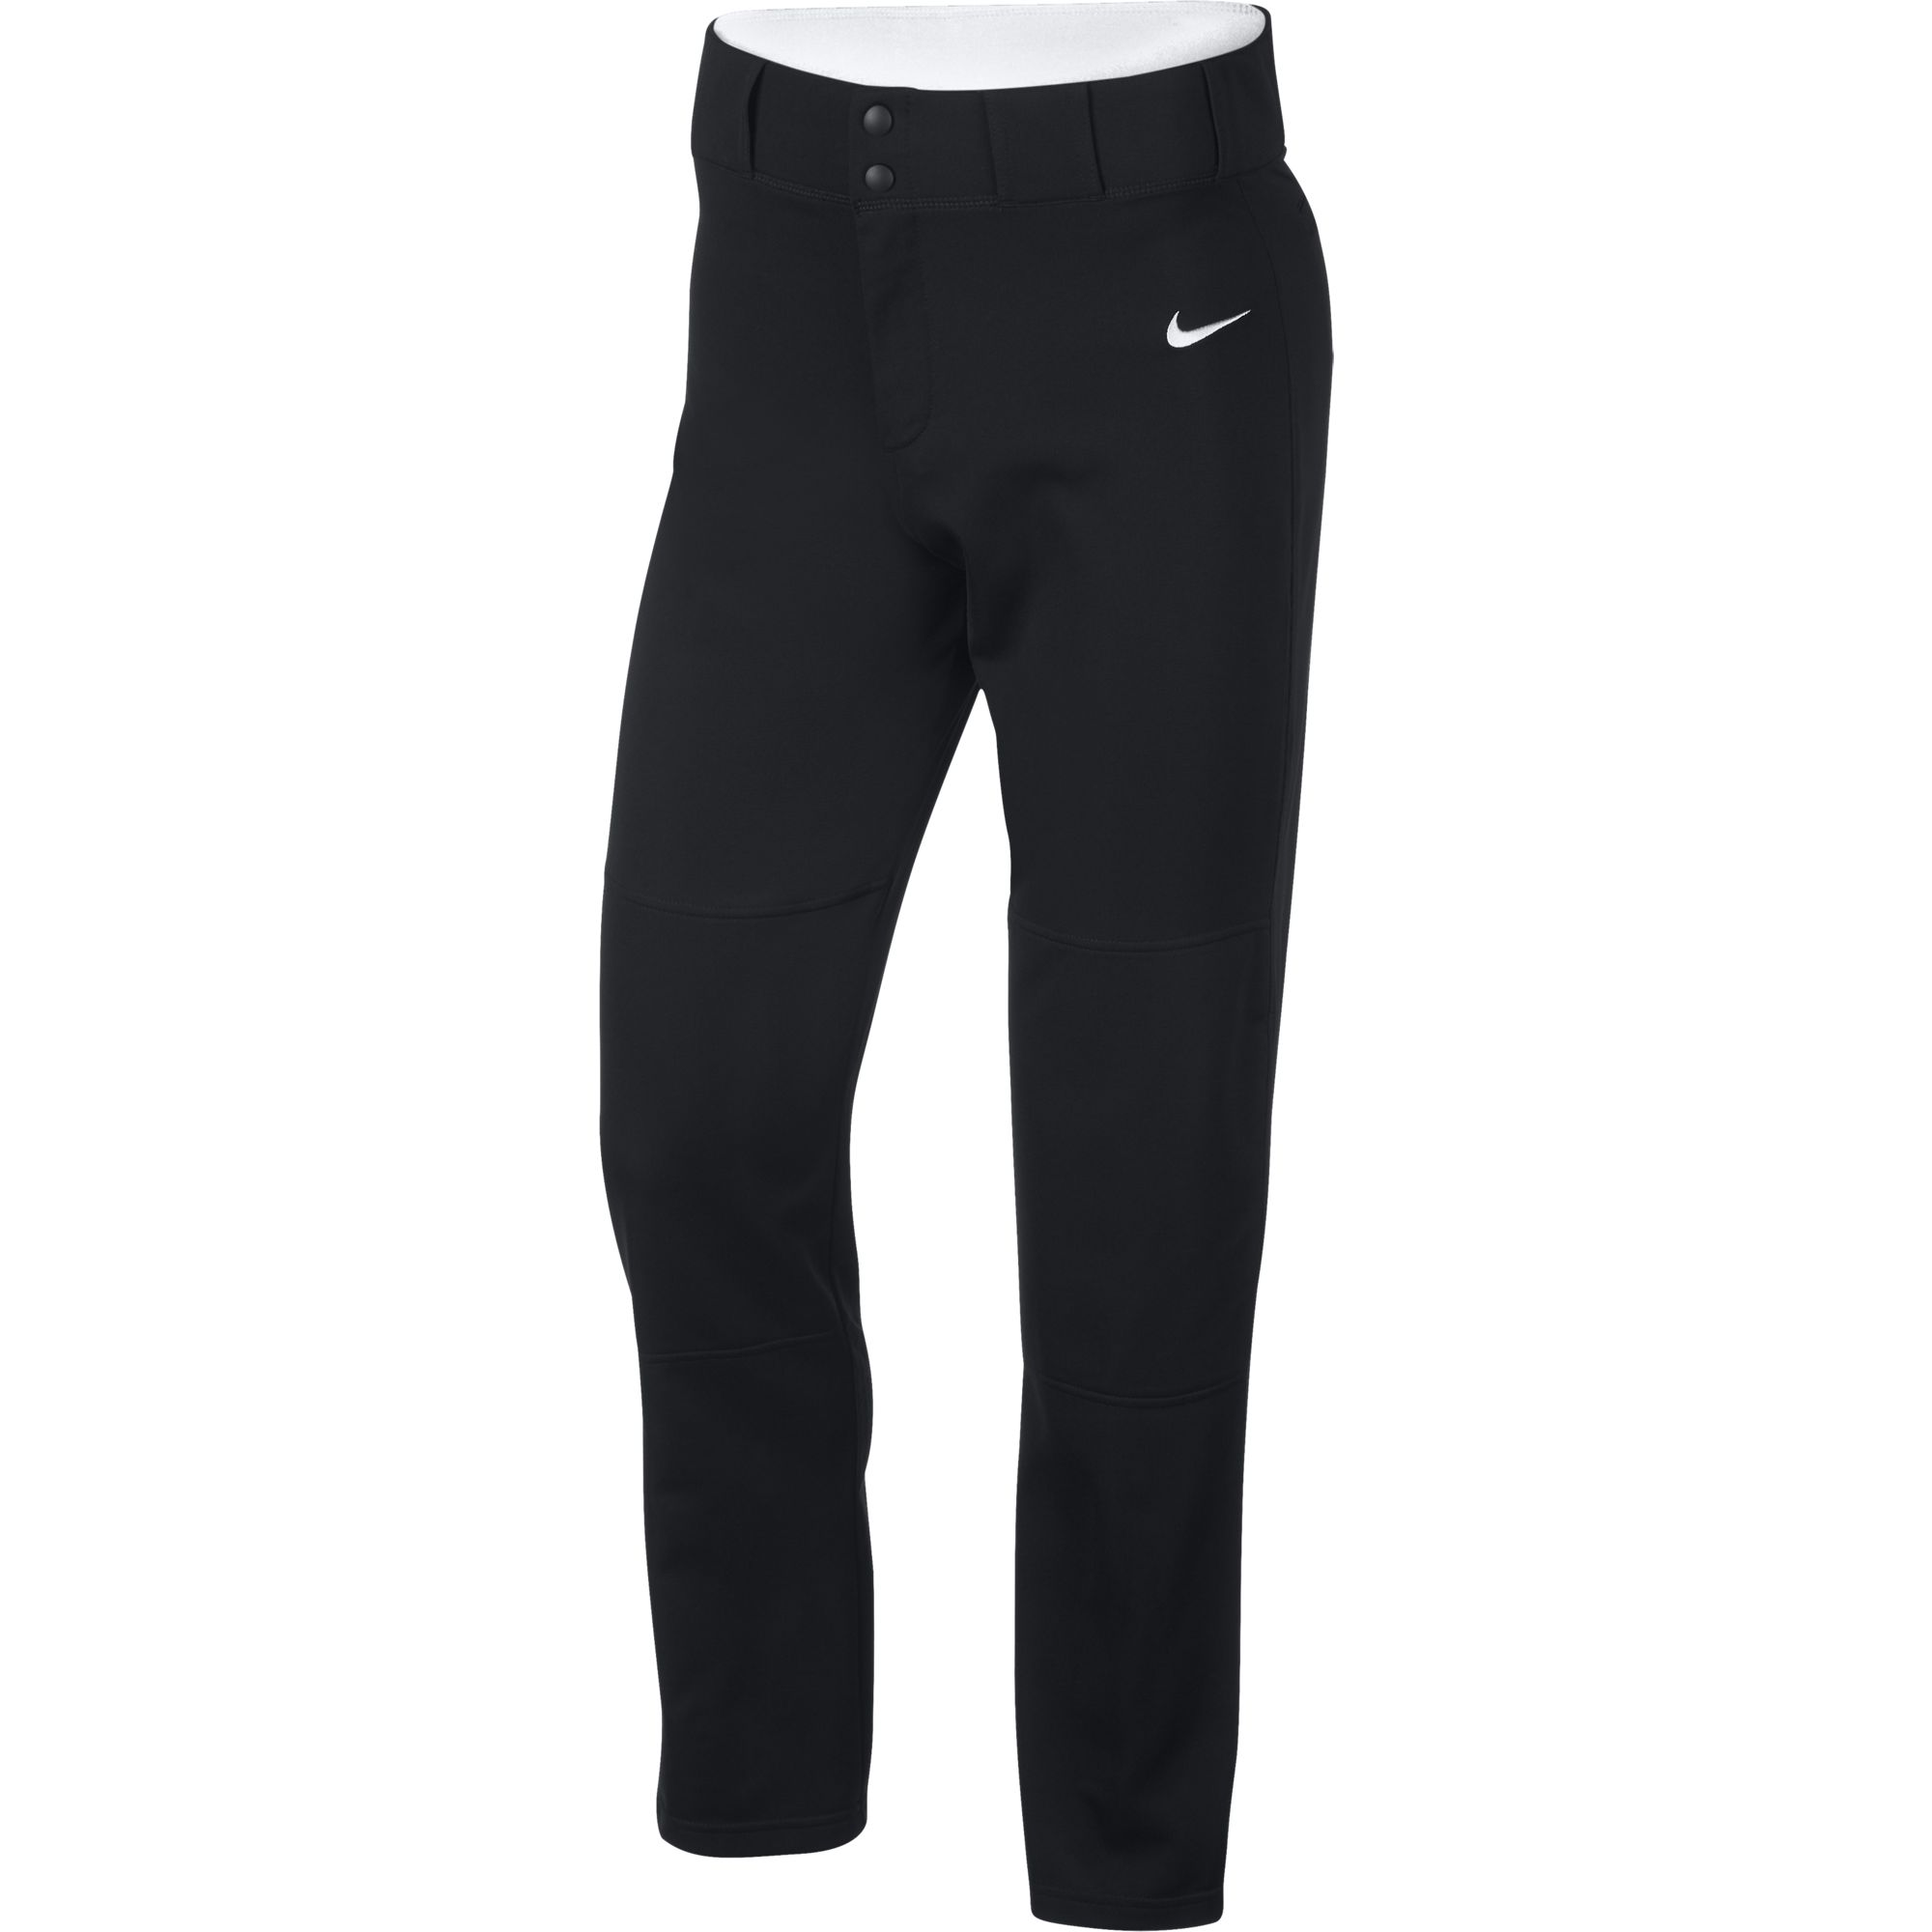 Men's Core Baseball Pant, Black, swatch